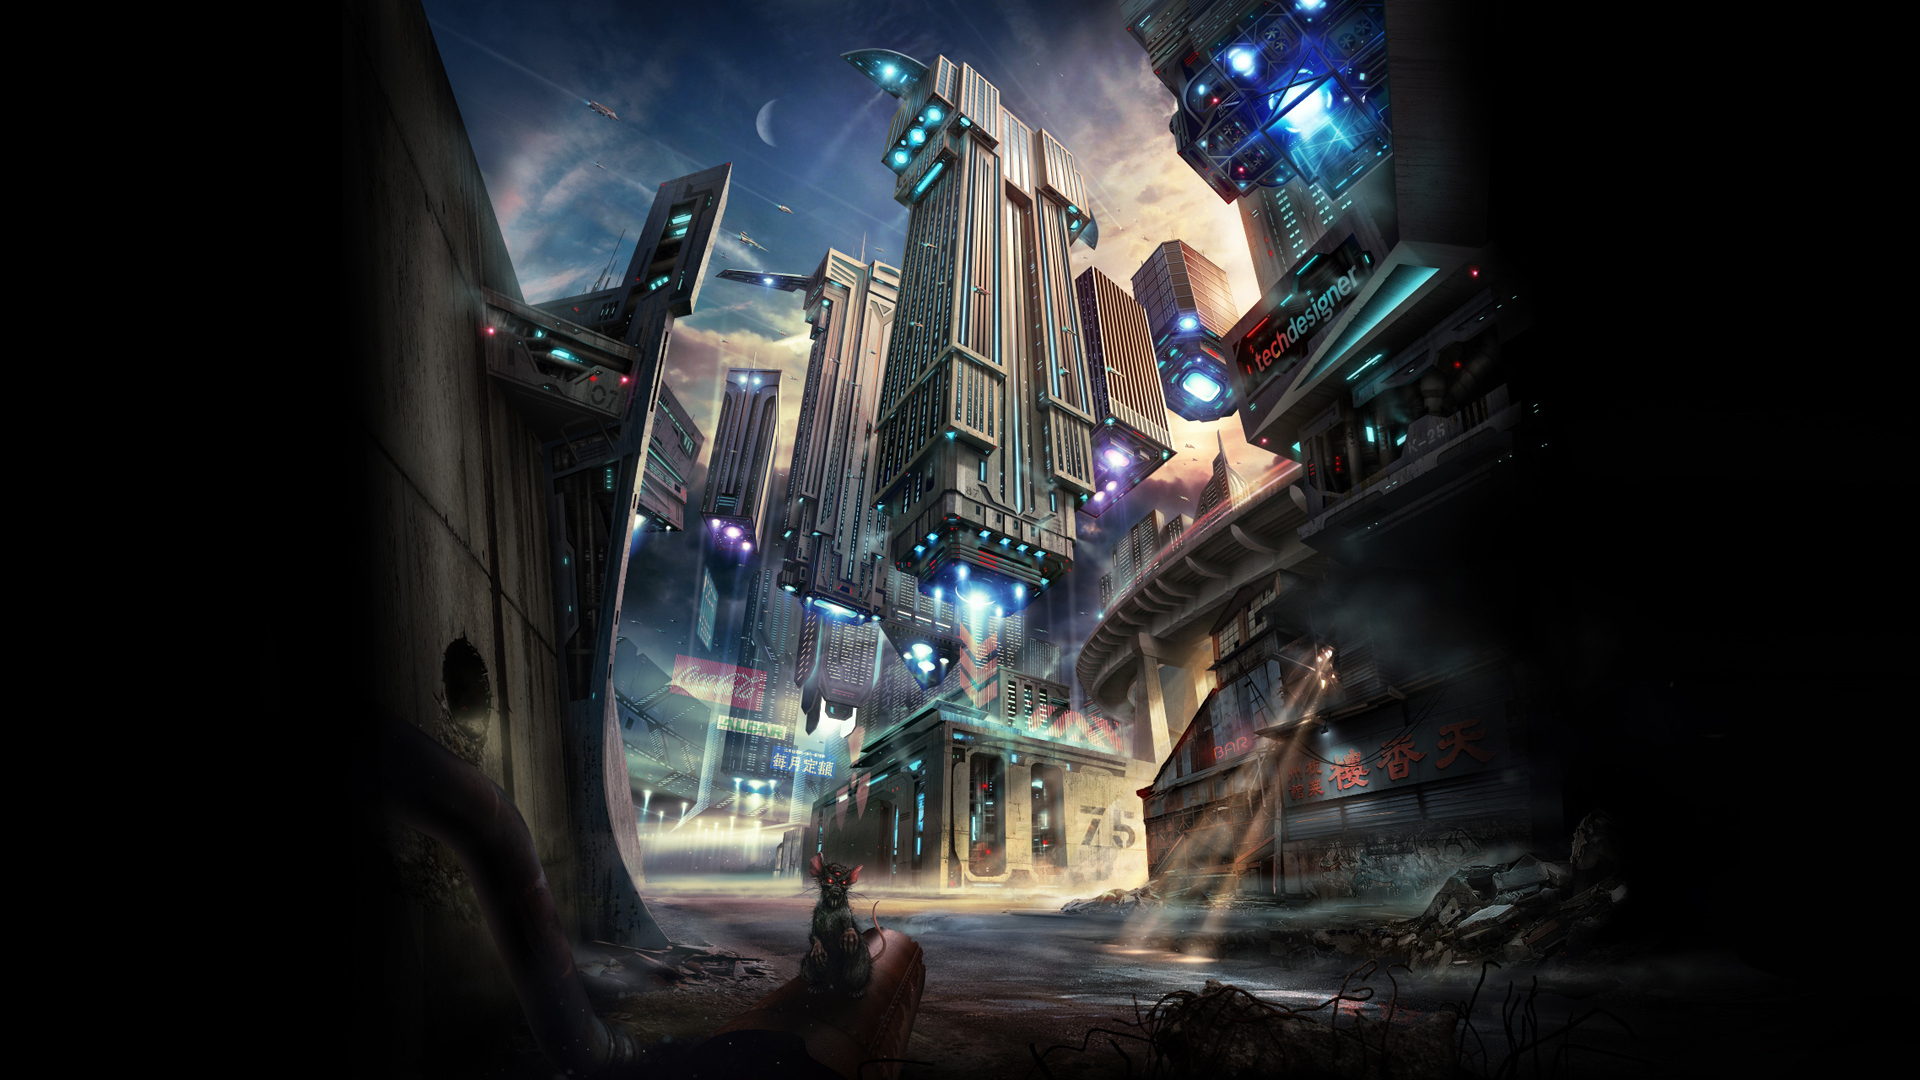 Futuristic City Wallpaper 38